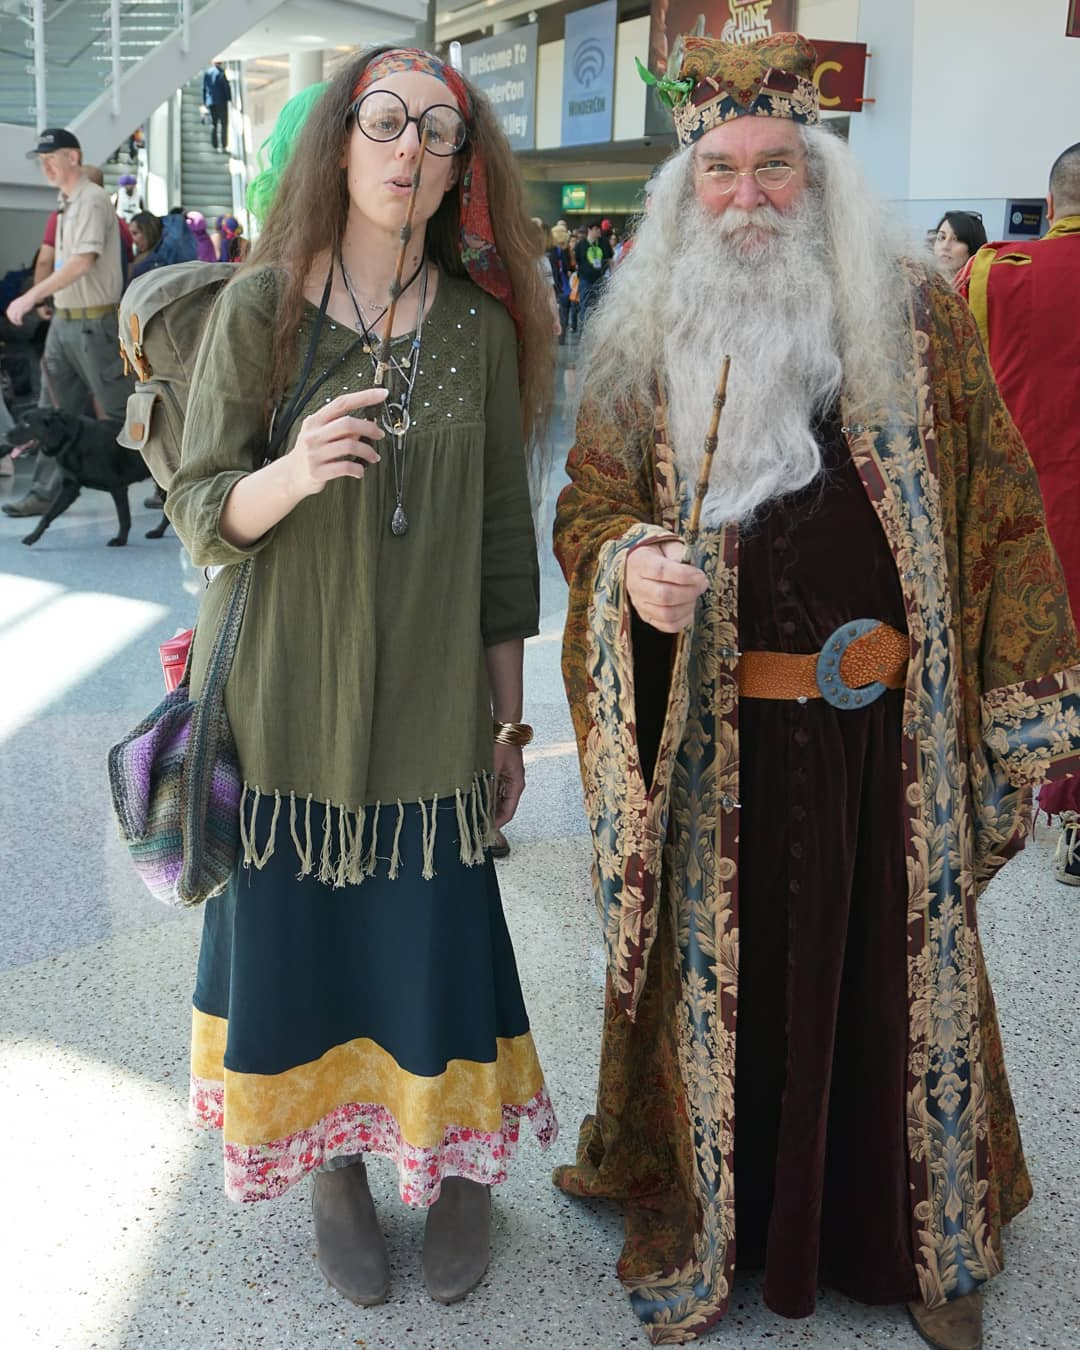 Professors Trelawney and Dumbledore at @wondercon  More photos on Flickr/KelsonV